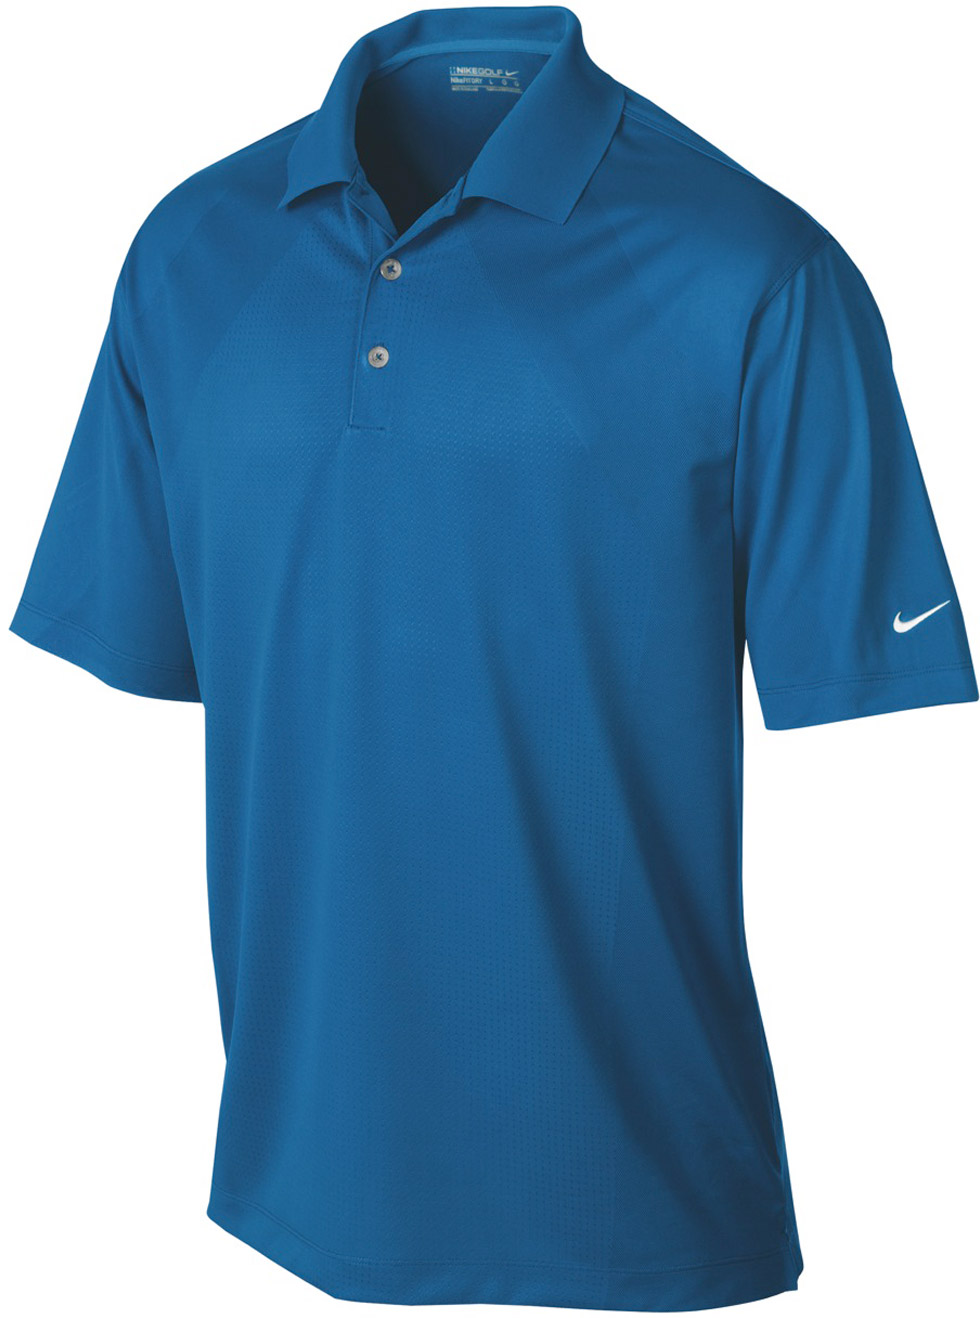 Related Pictures golf clothing why is golf etiquette so strict